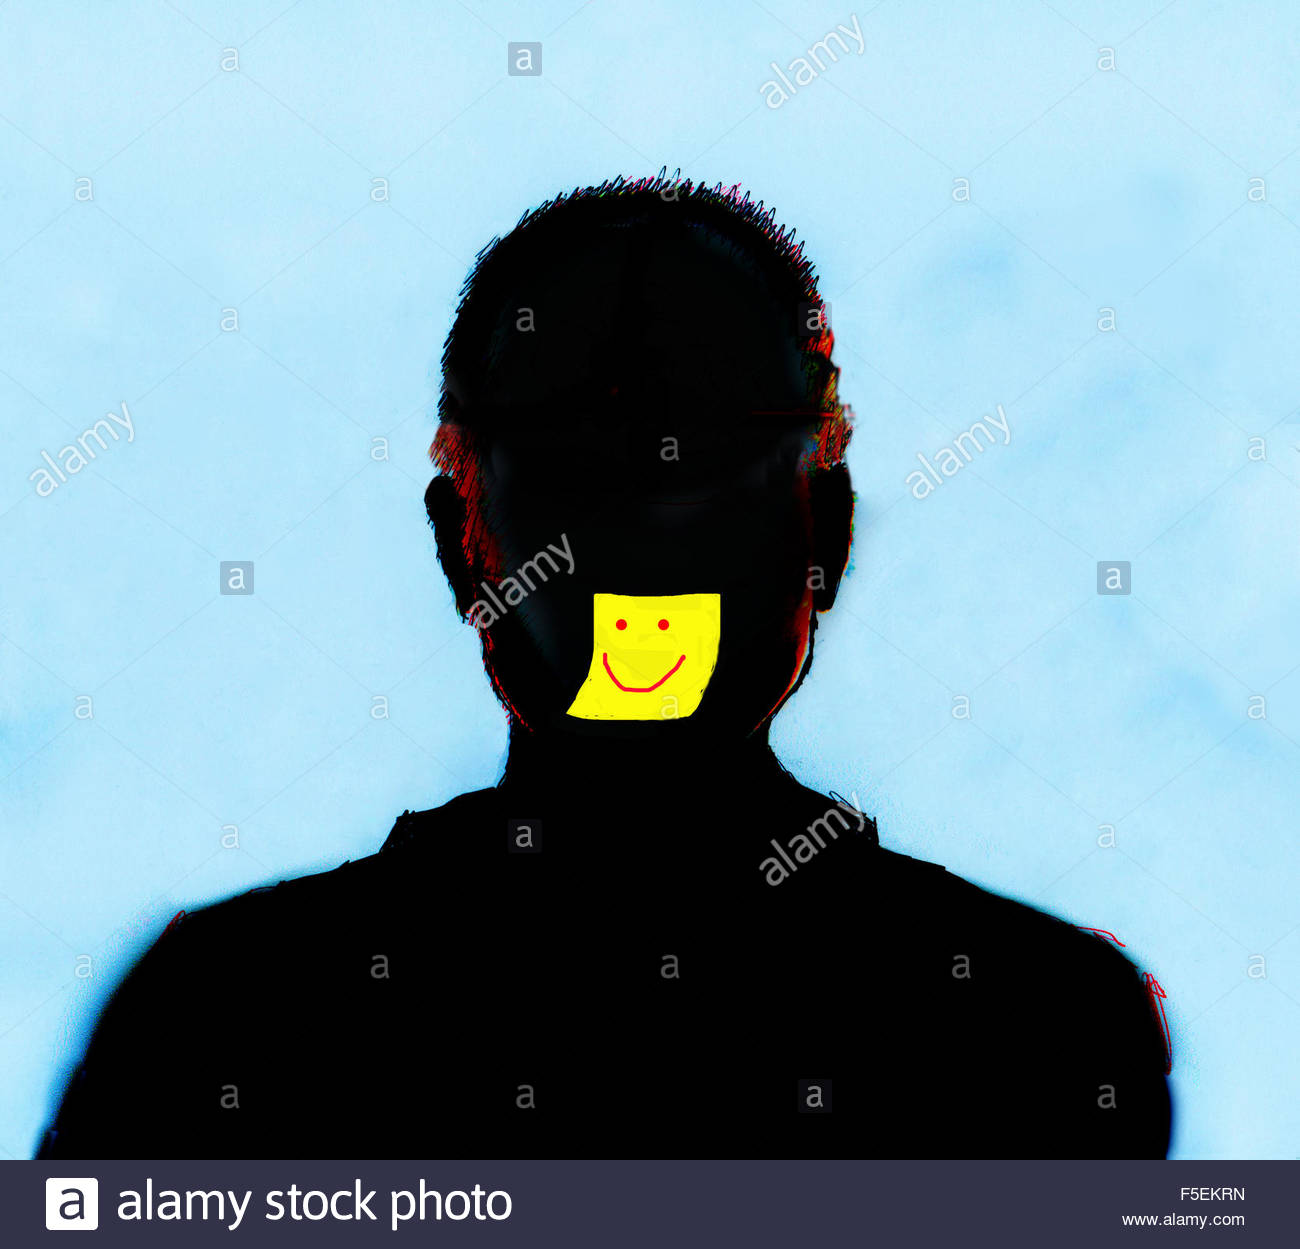 Yellow sticky note with smiley face on silhouette of man's face - Stock Image